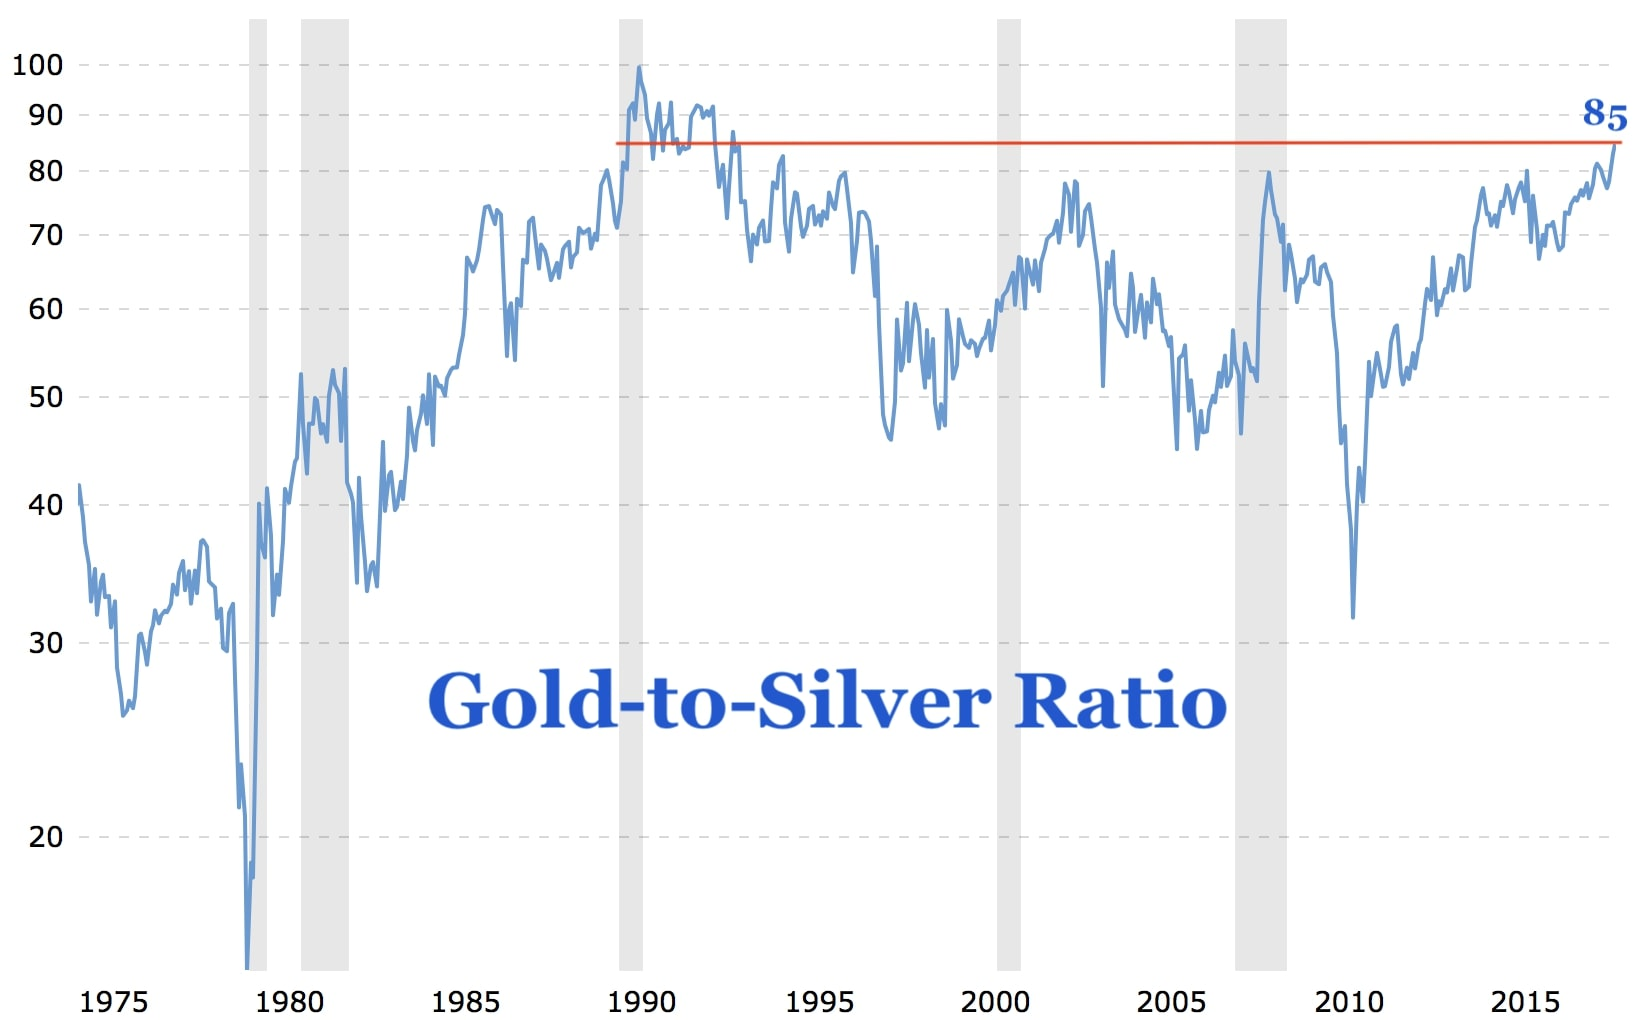 hight resolution of in the past the gold to silver ratio spiked higher during times of economic instability or recession see grey shaded areas this makes sense as gold is